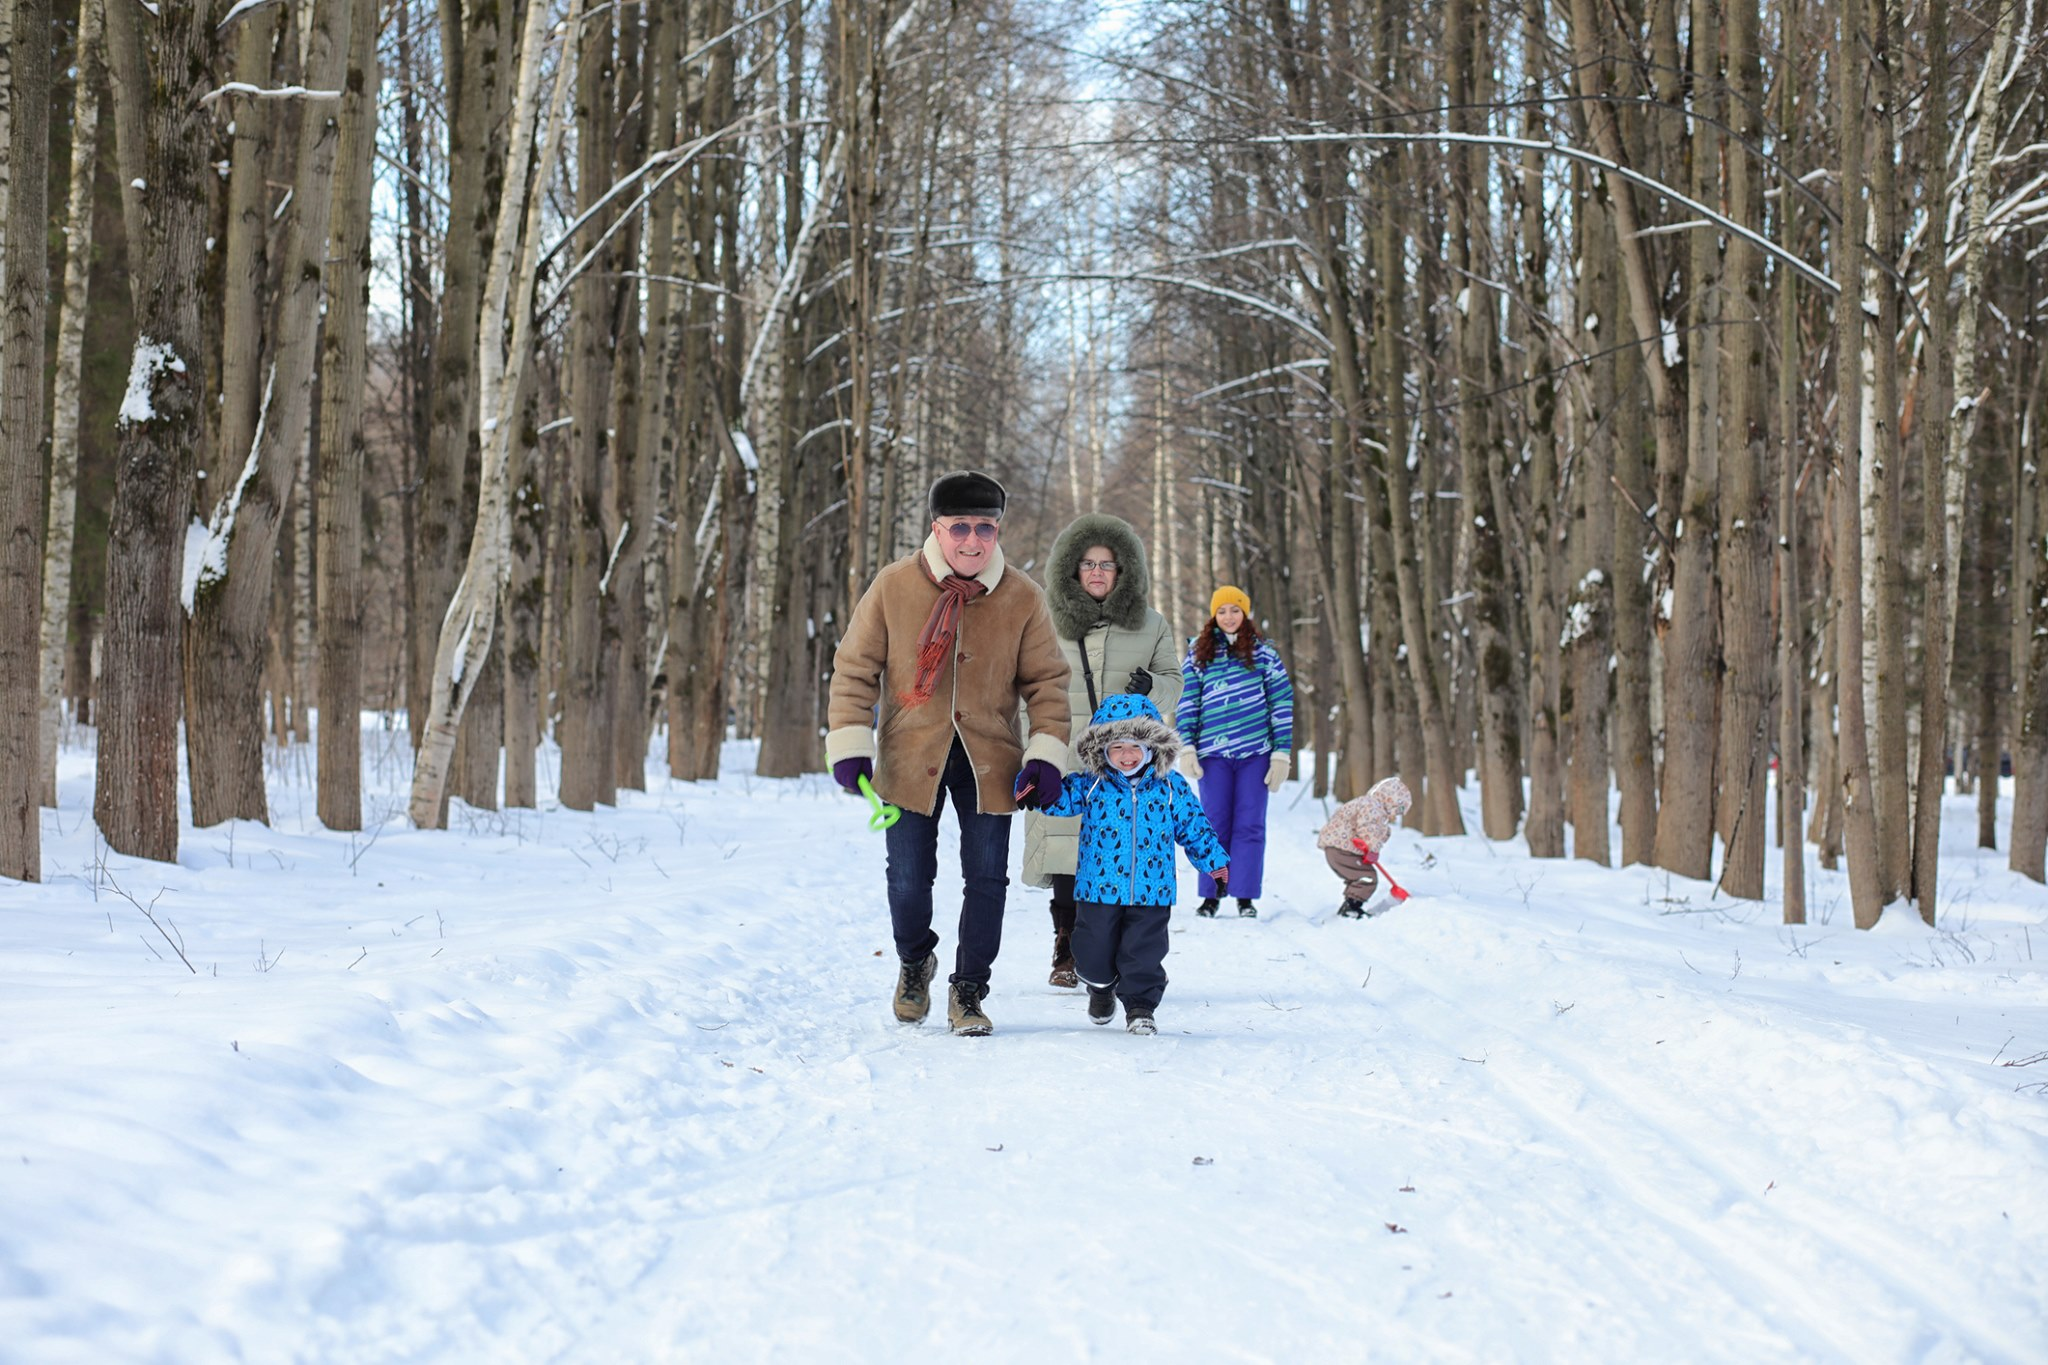 Winter Discovery Walk at the Ryerson Woods